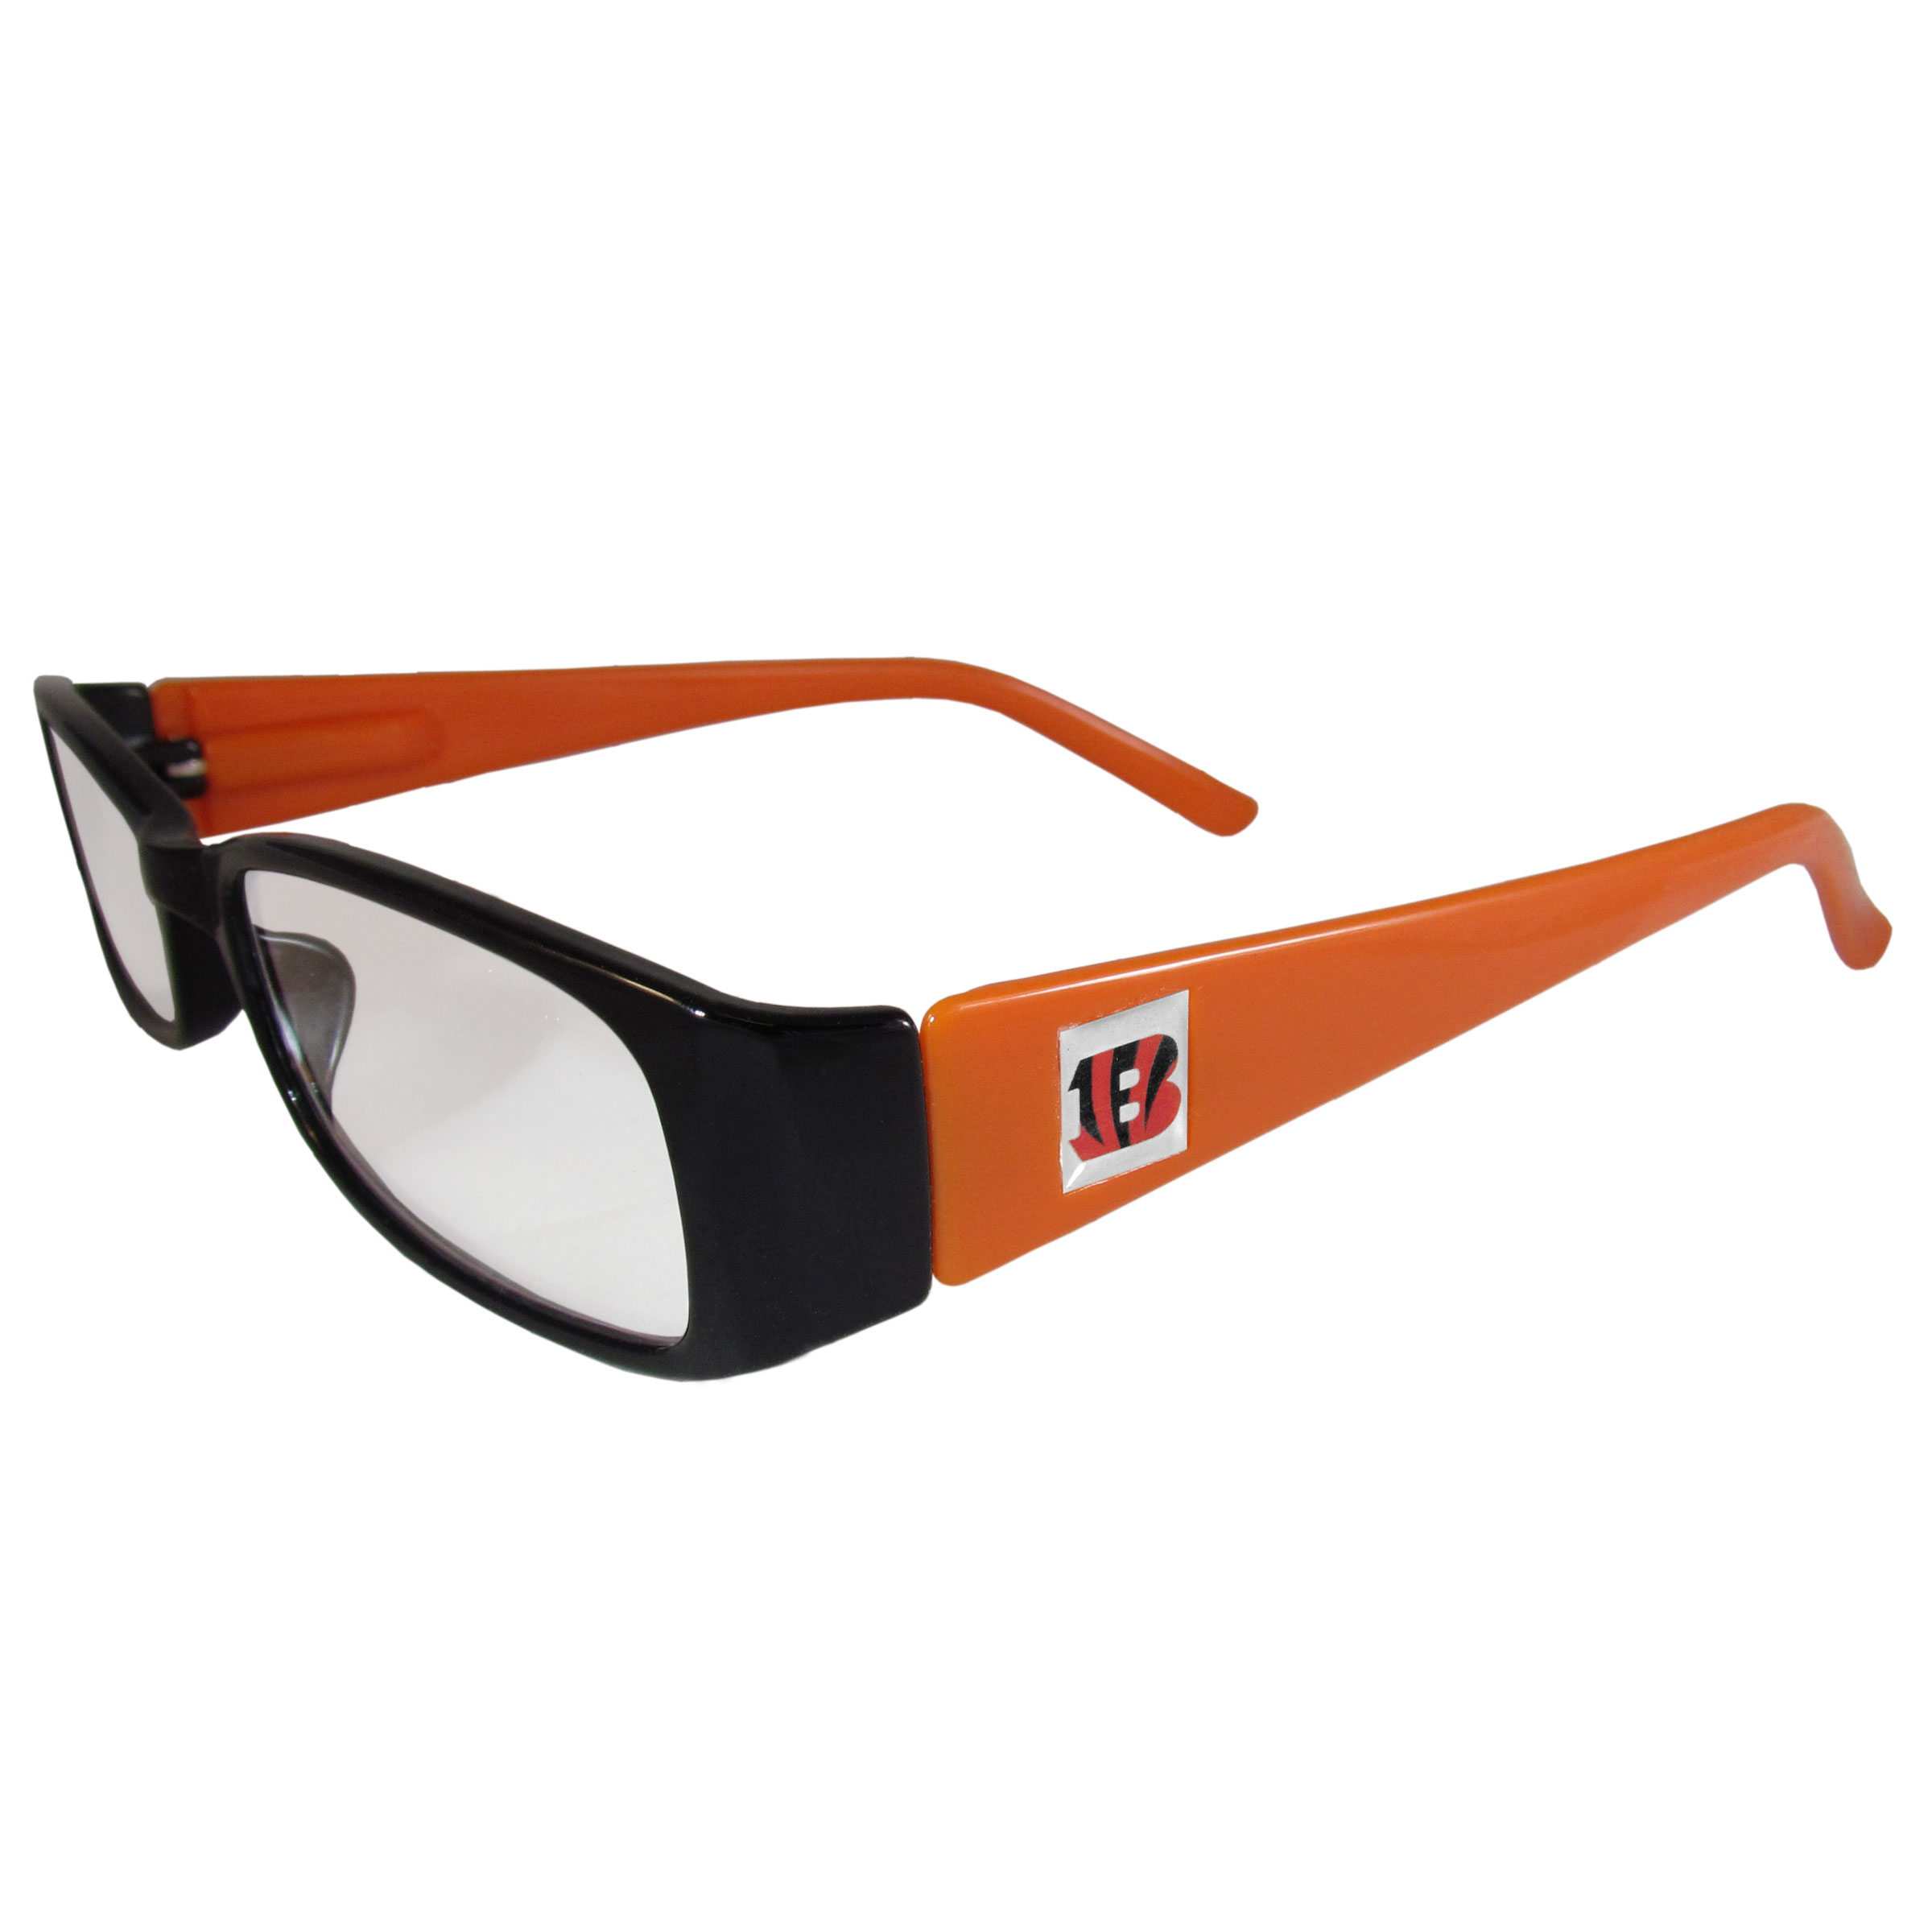 Cincinnati Bengals Reading Glasses +1.25 - Our Cincinnati Bengals reading glasses are 5.25 inches wide and feature the team logo on each arm. Magnification Power 1.25